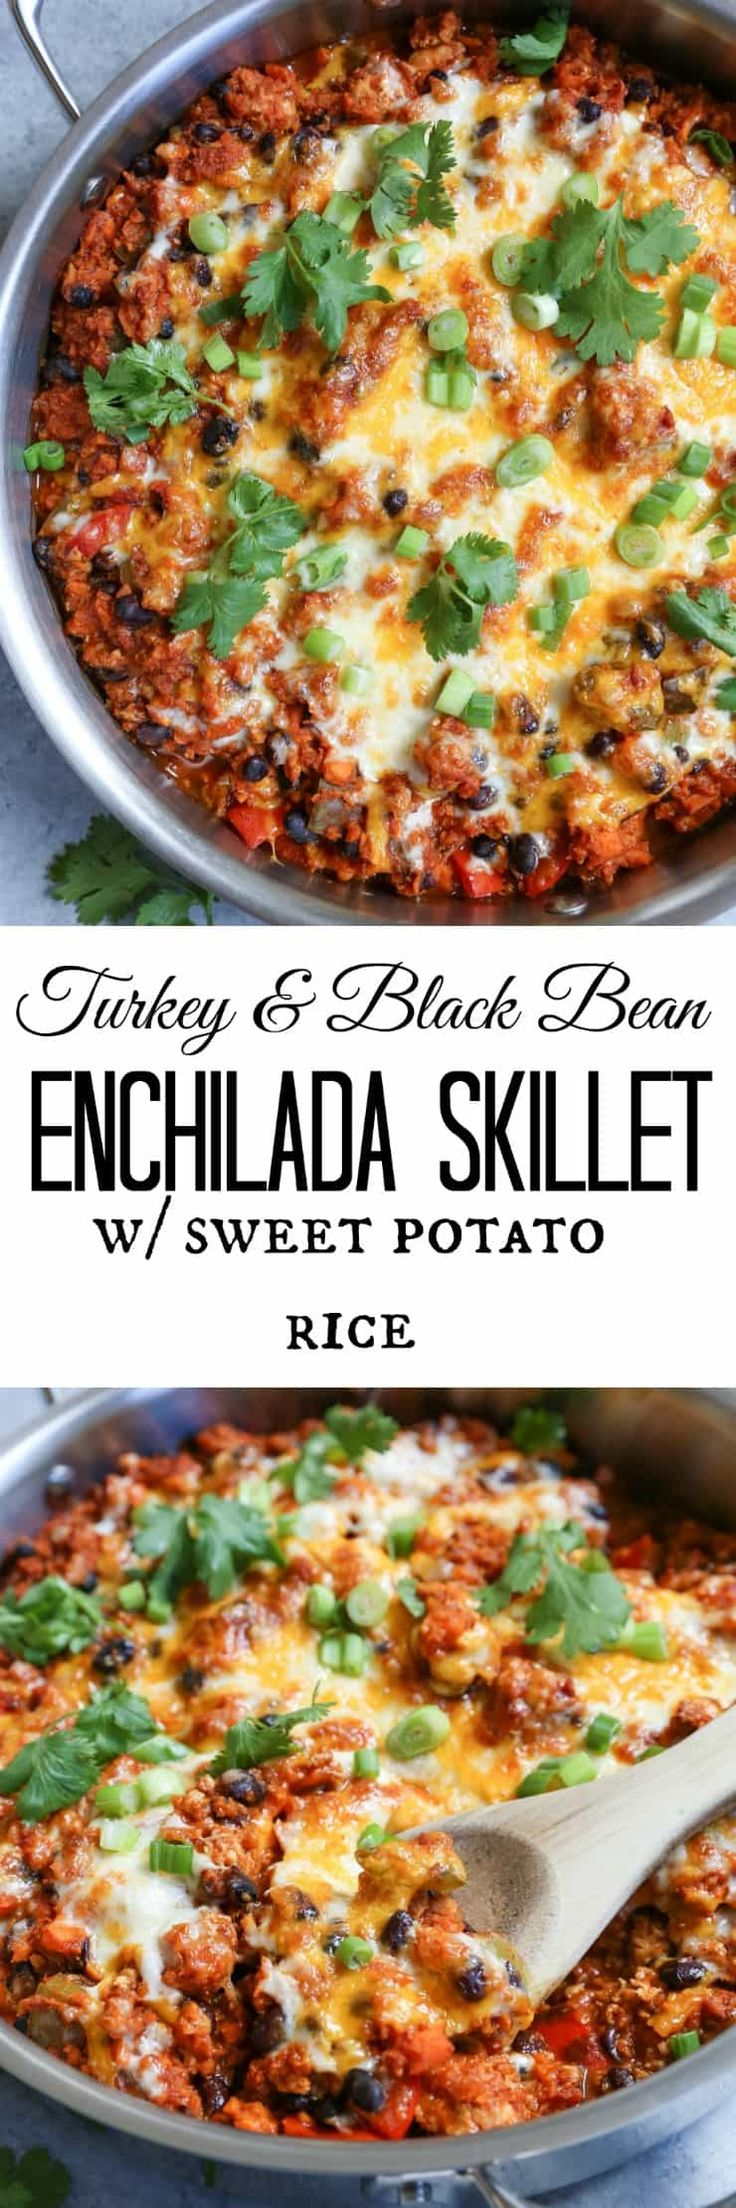 Turkey and Black Bean Enchilada Skillet with Sweet Potato Rice - an easy dinner recipe made in under an hour!